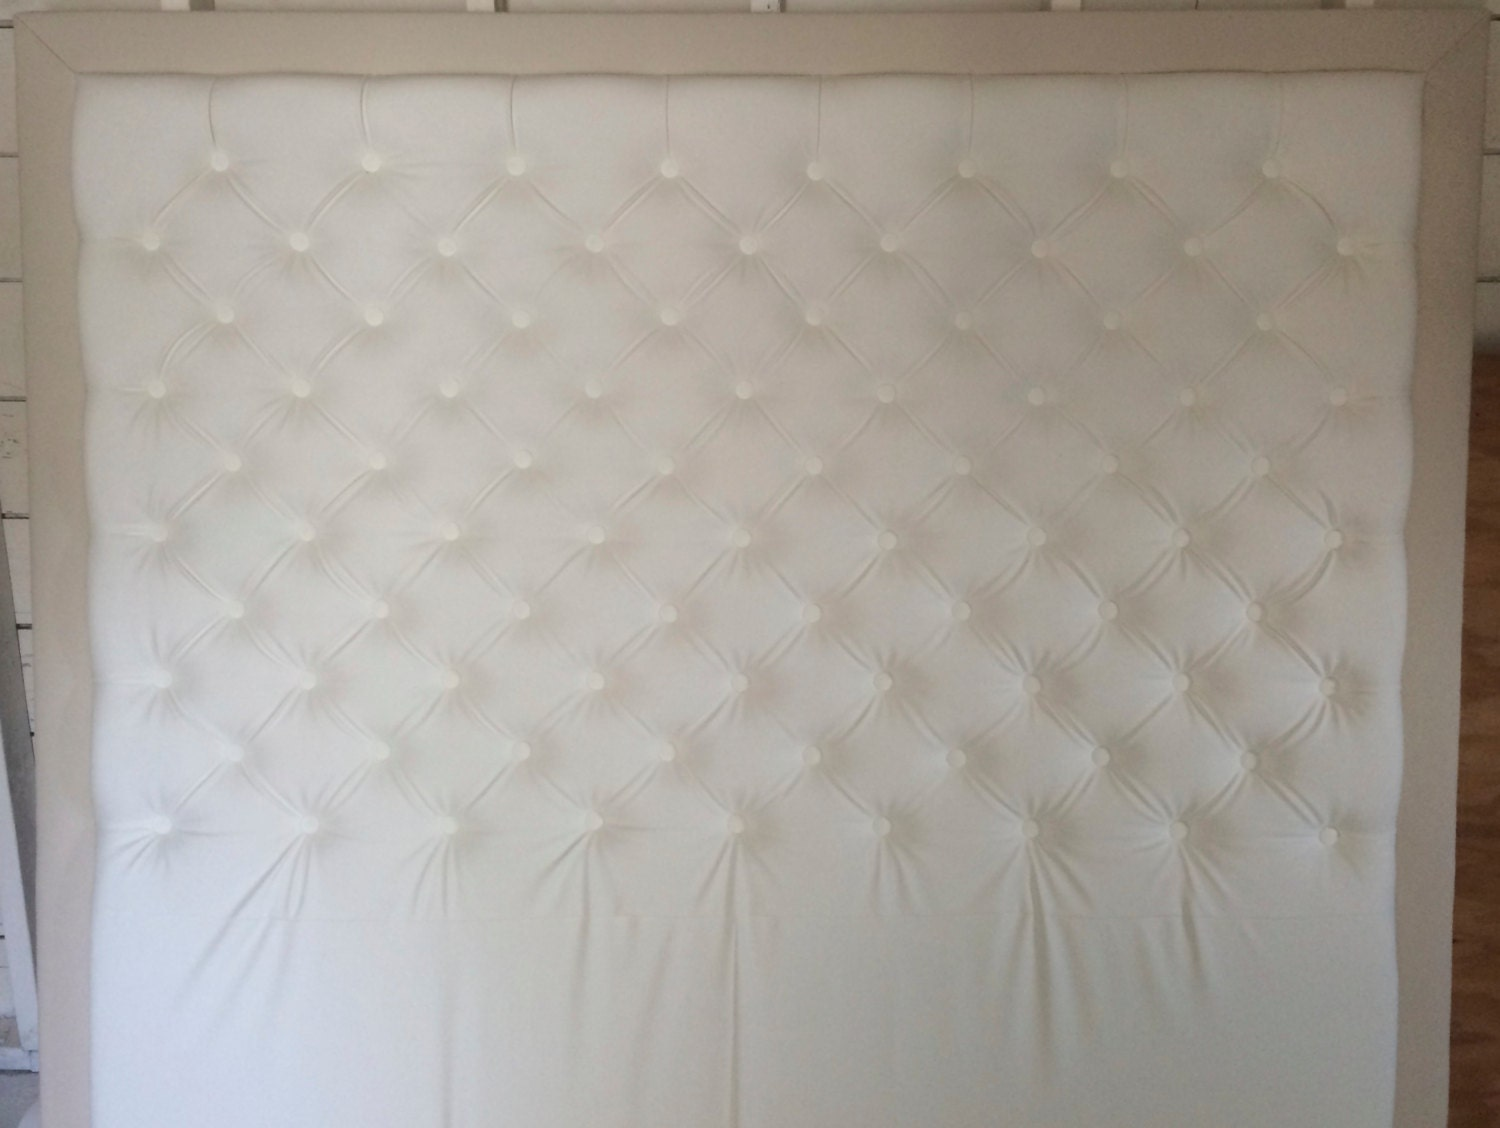 Axel Pewter Linen Tufted Headboard Headboards: Diamond Tufted Faux Leather Headboard With By Samanthadanielle